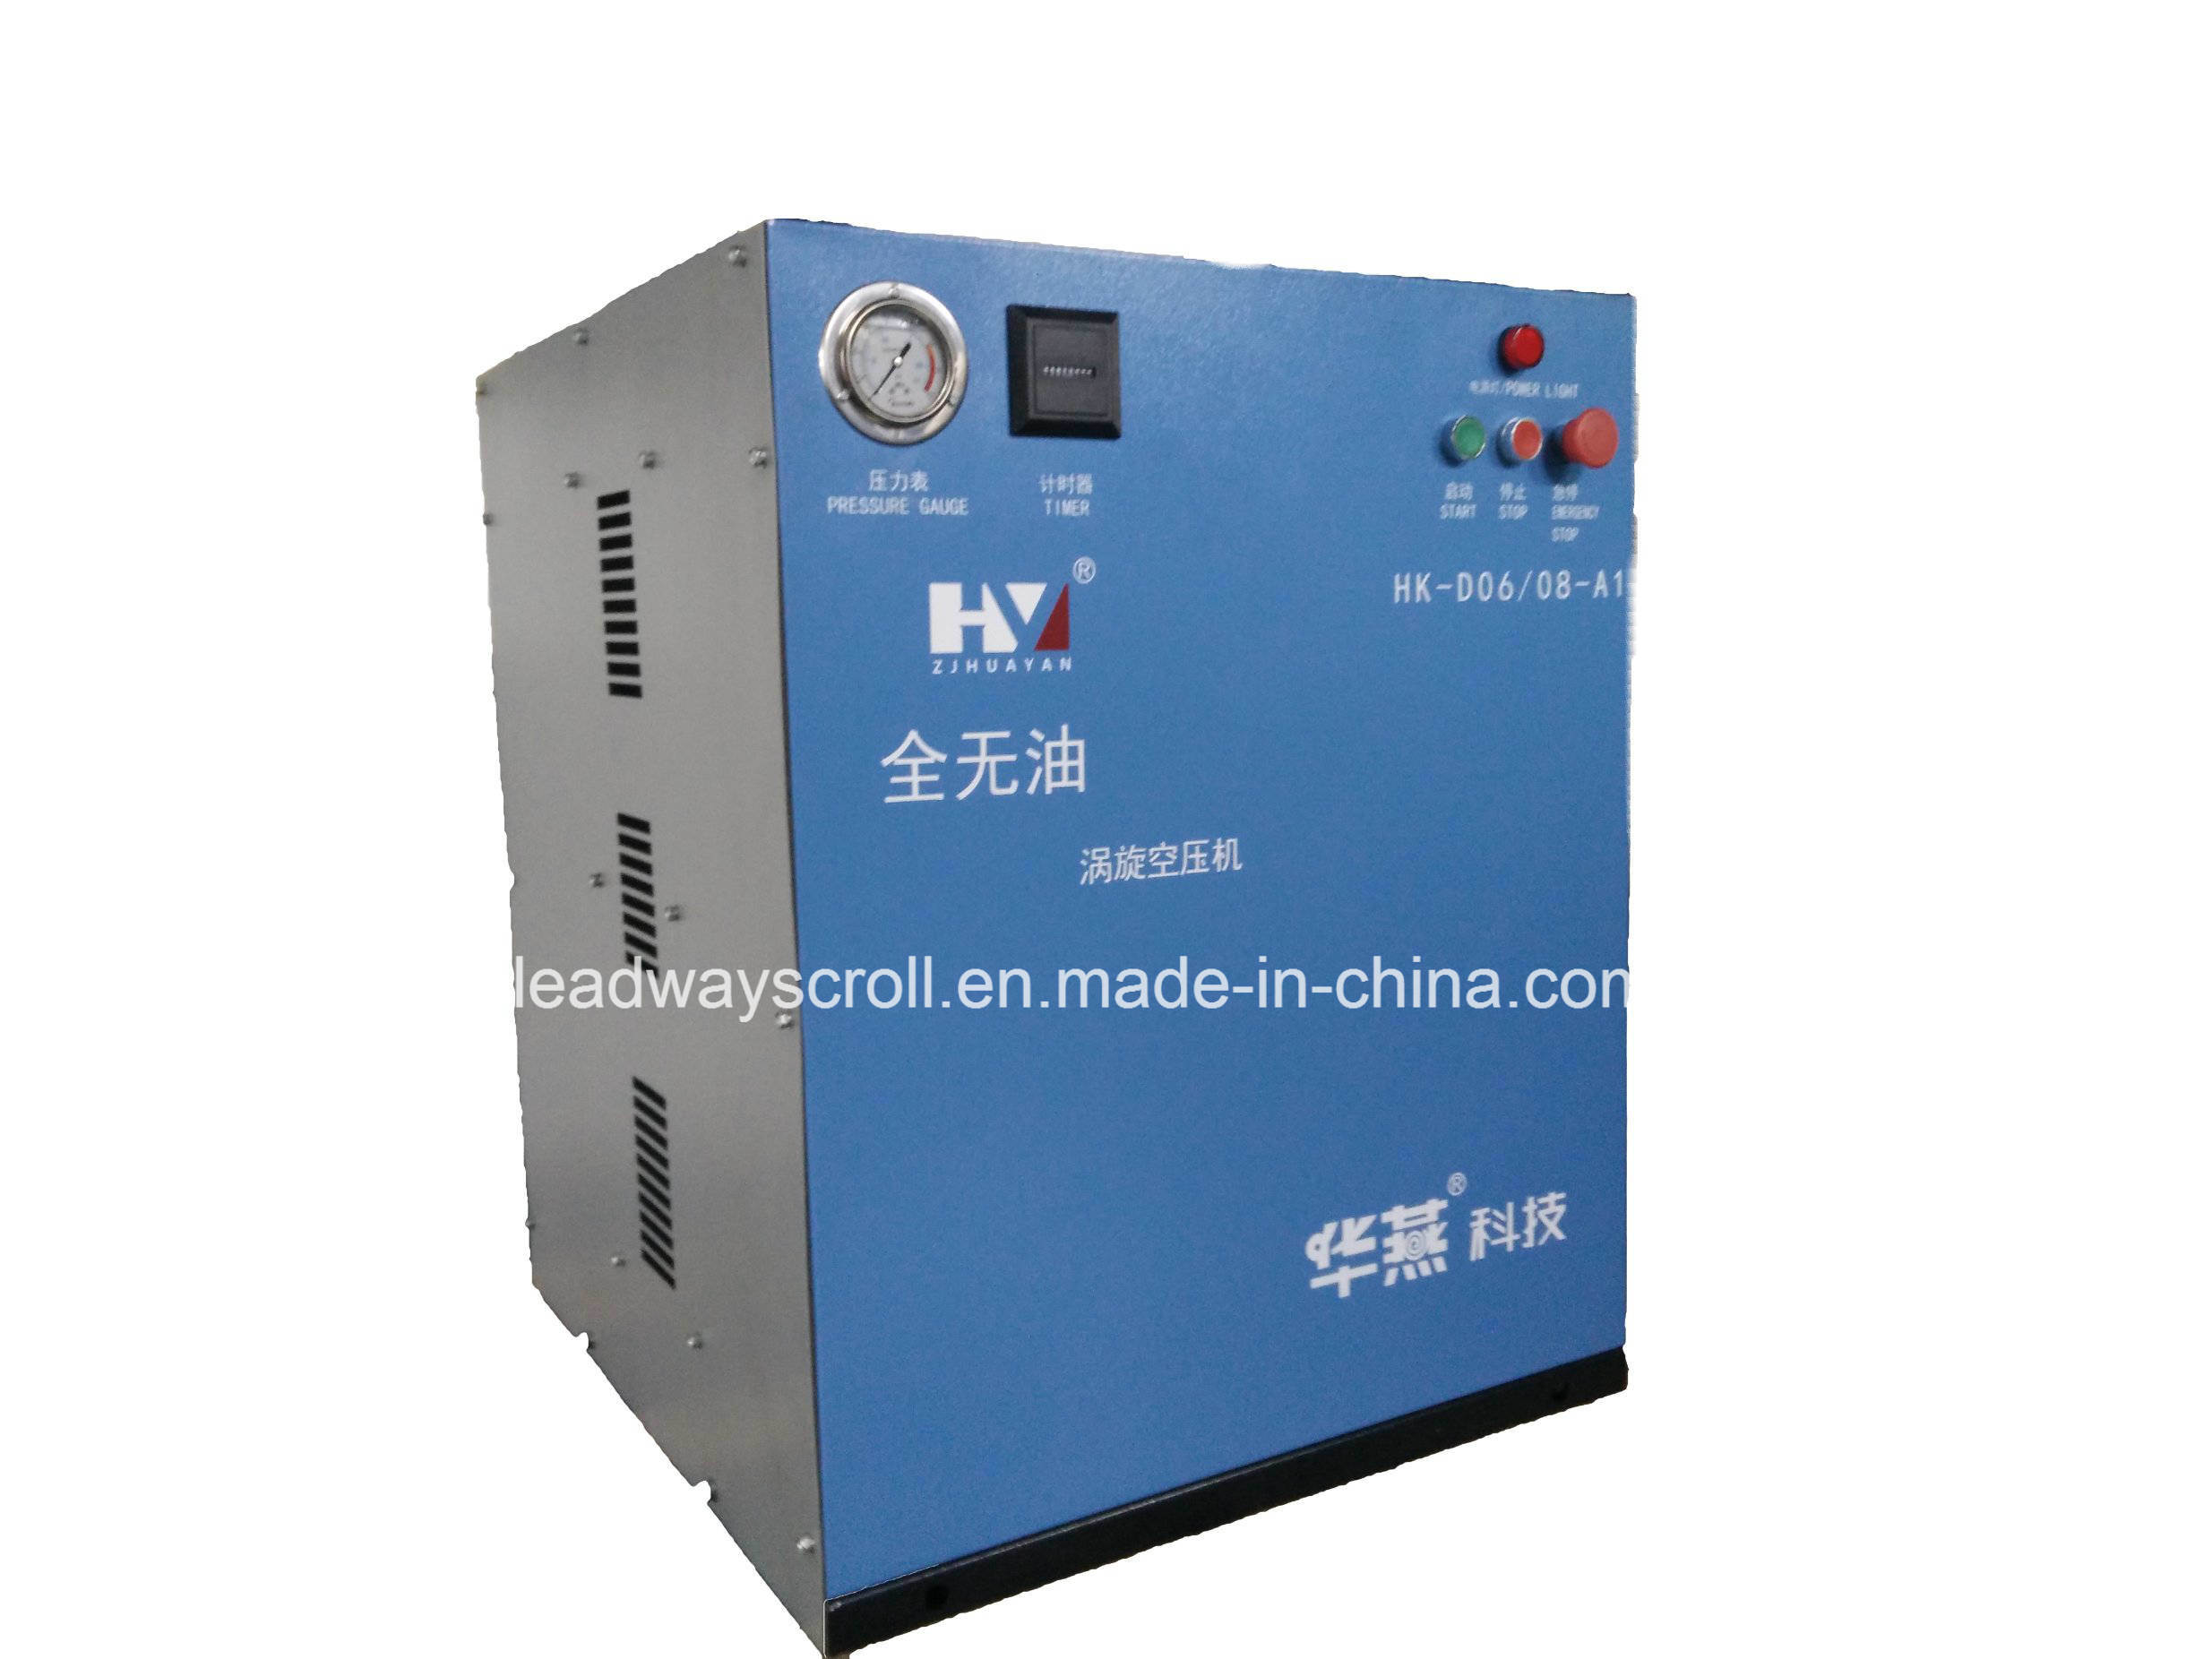 Silent Air Compressor for Dental 3.7kw